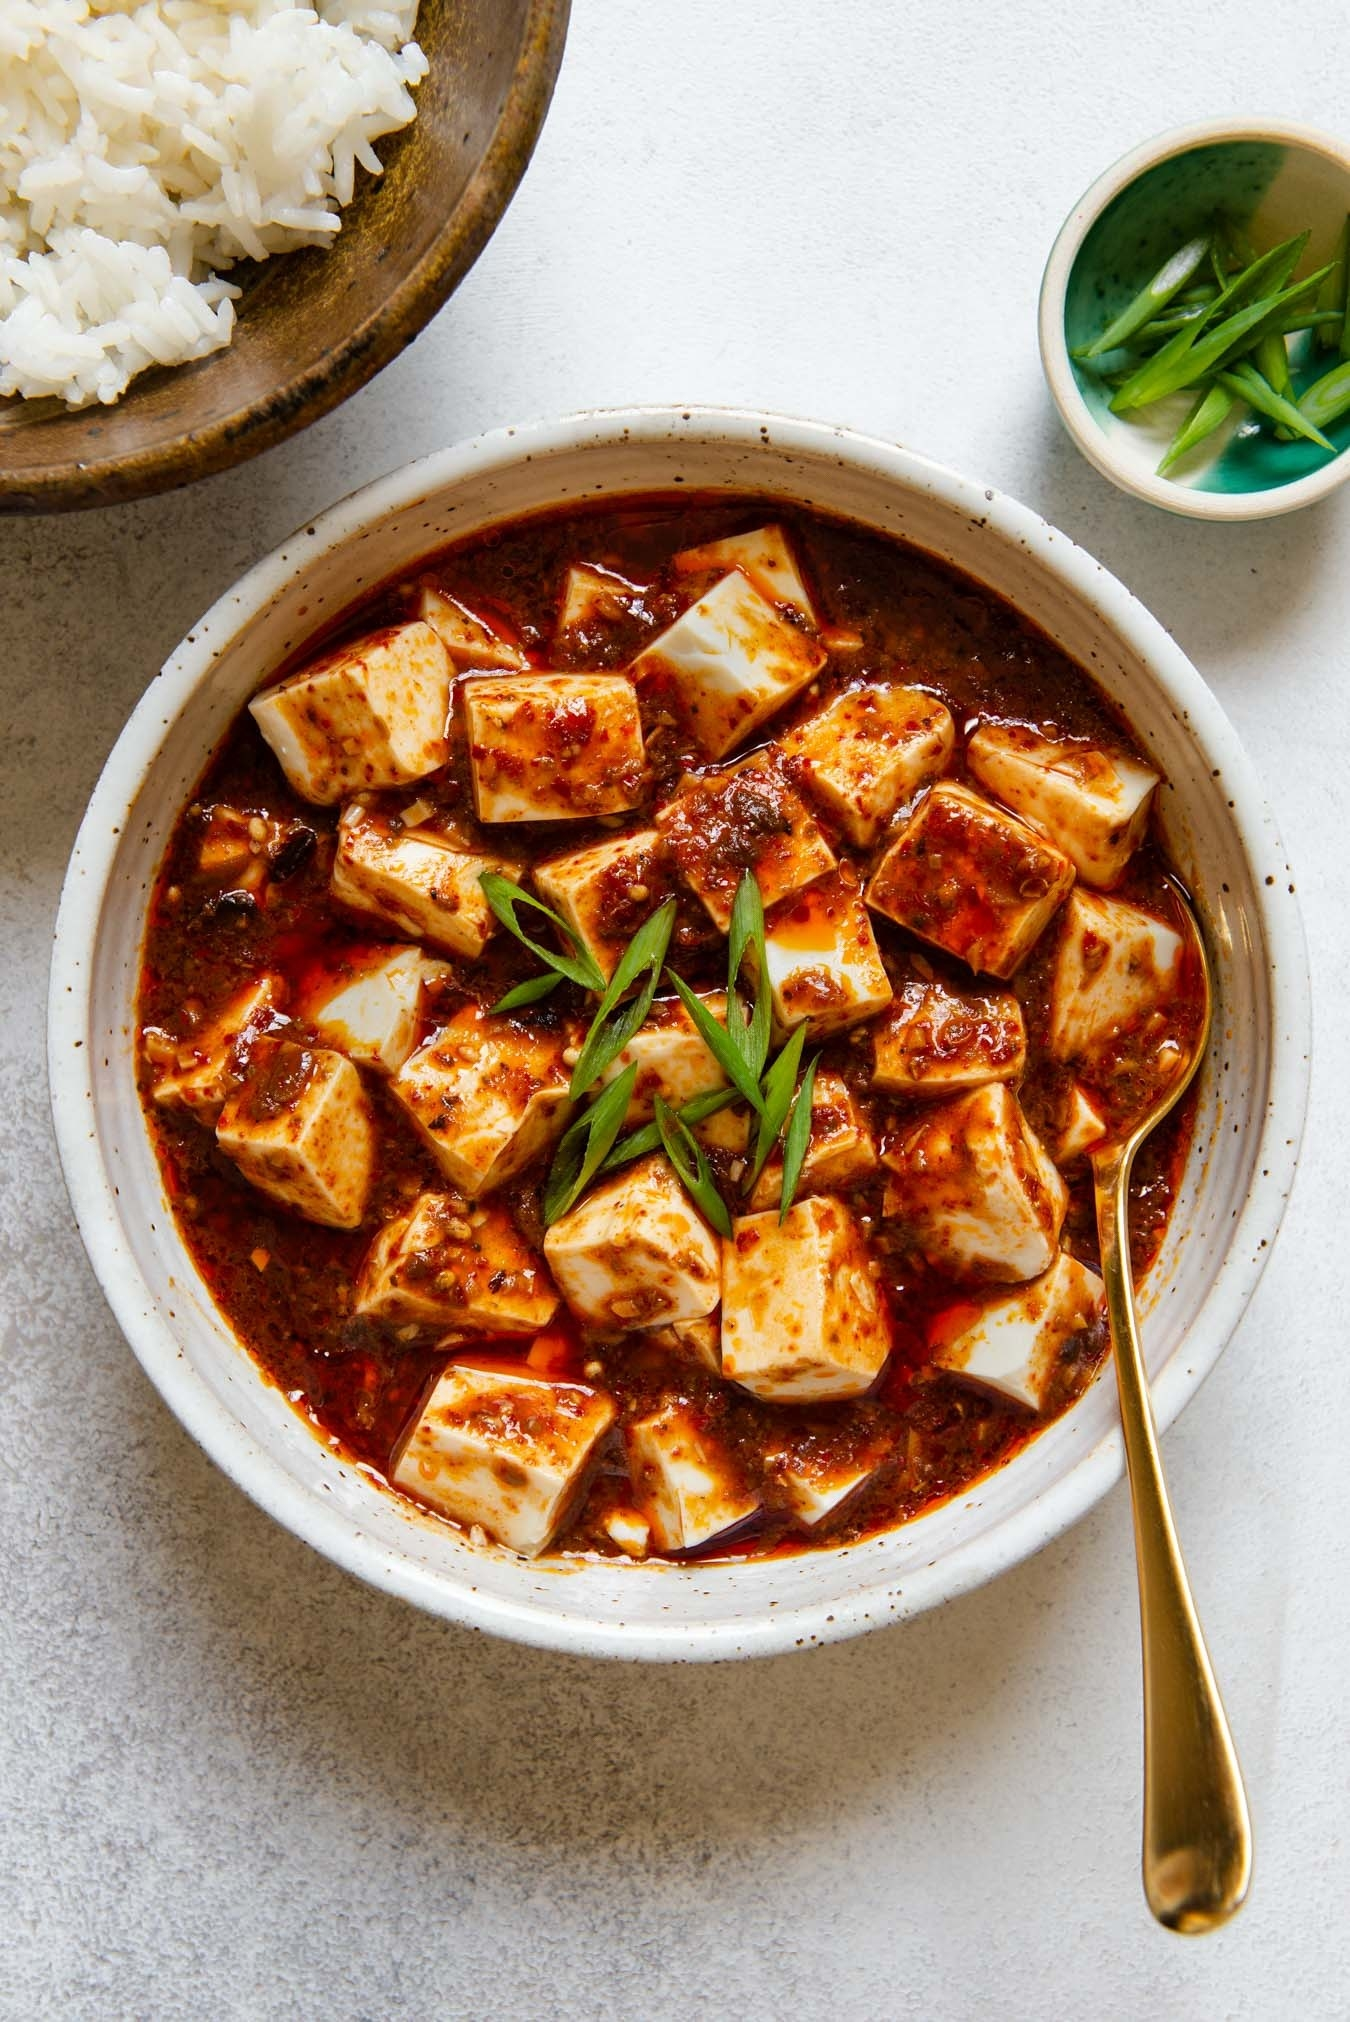 A bowl of tofu cubes in a spicy red sauce with scallions on top.